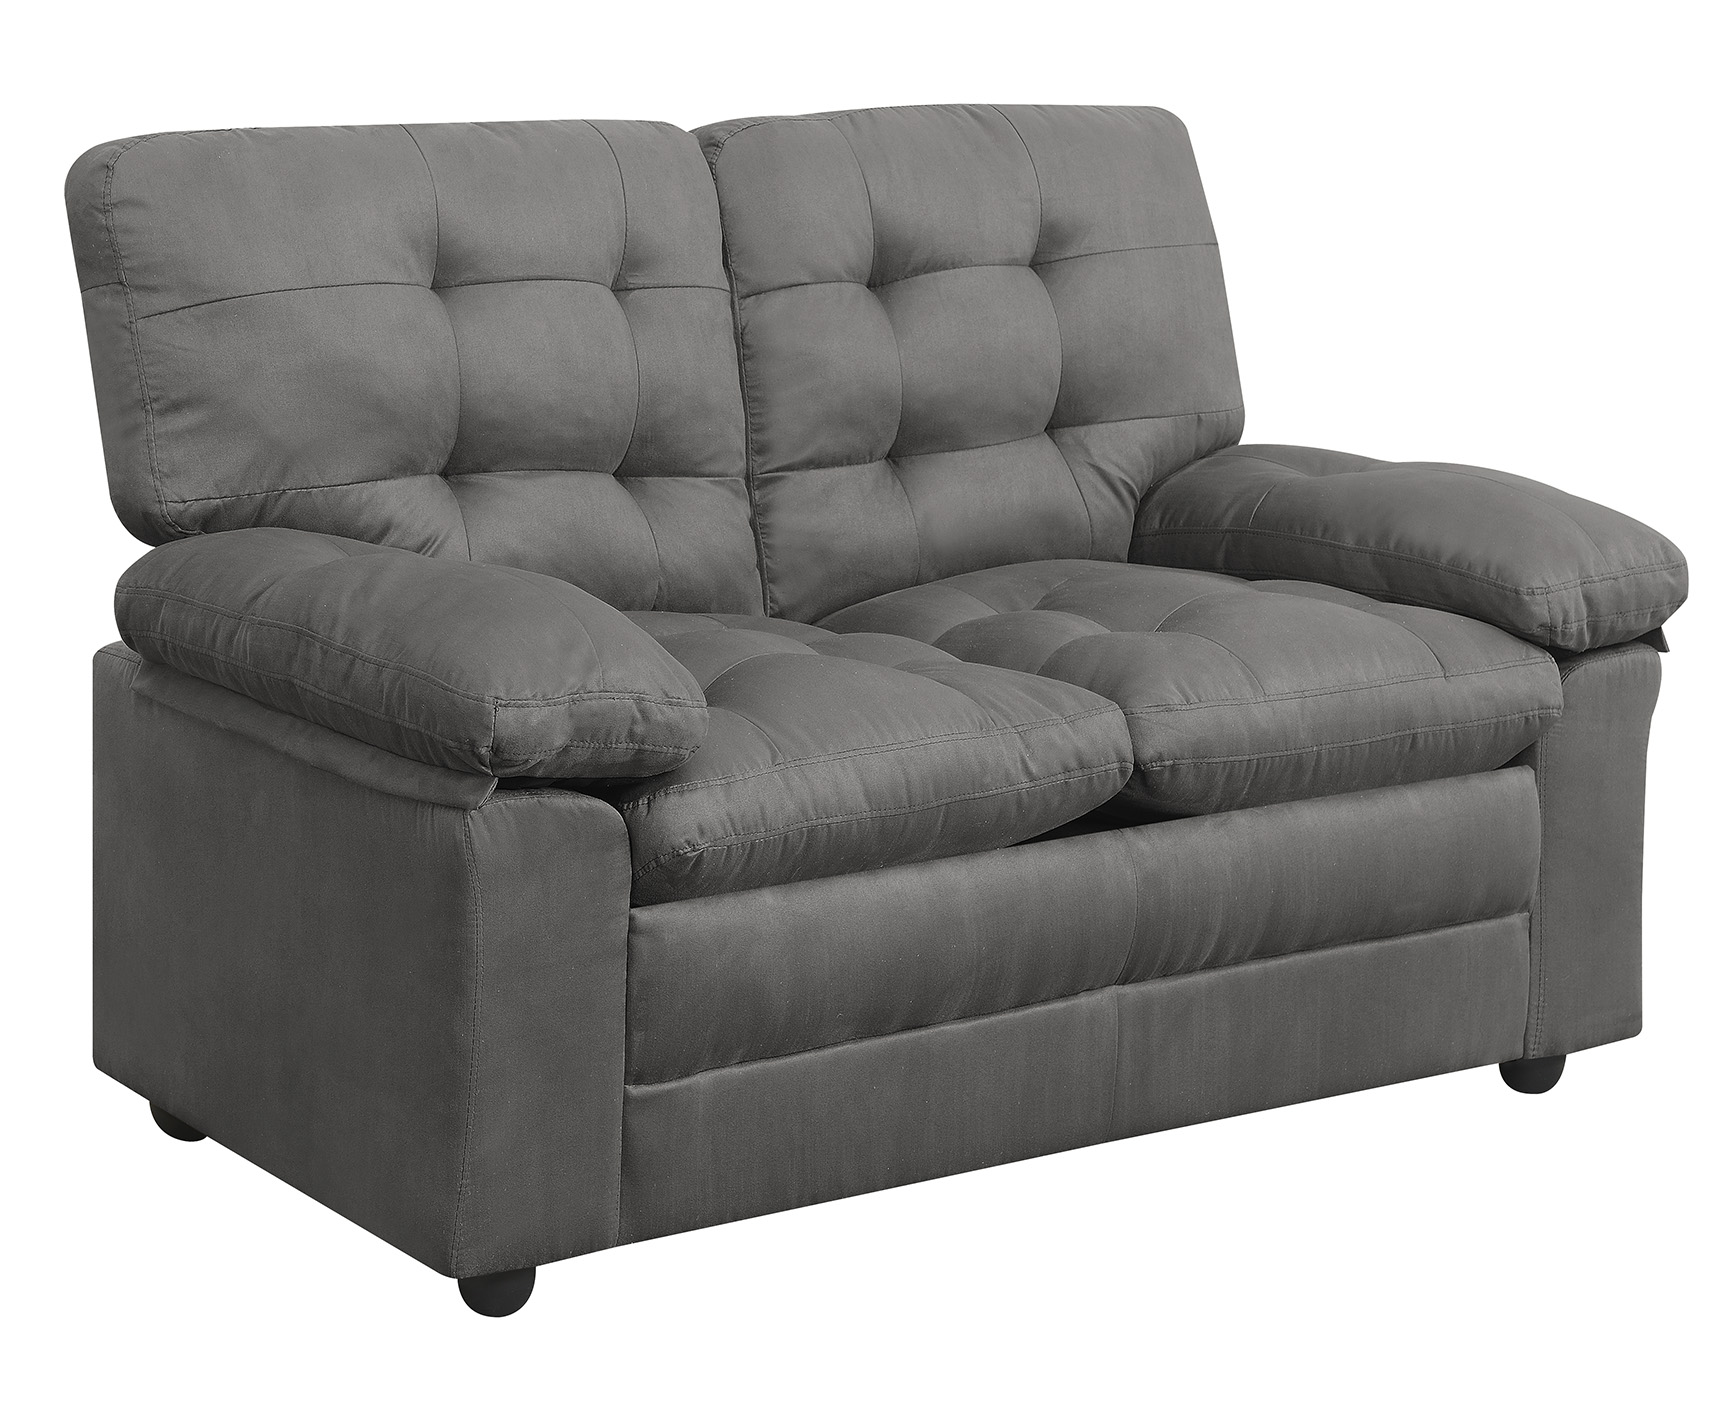 Sofa couch futon microfiber love seat tufted living room furniture grey loveseat